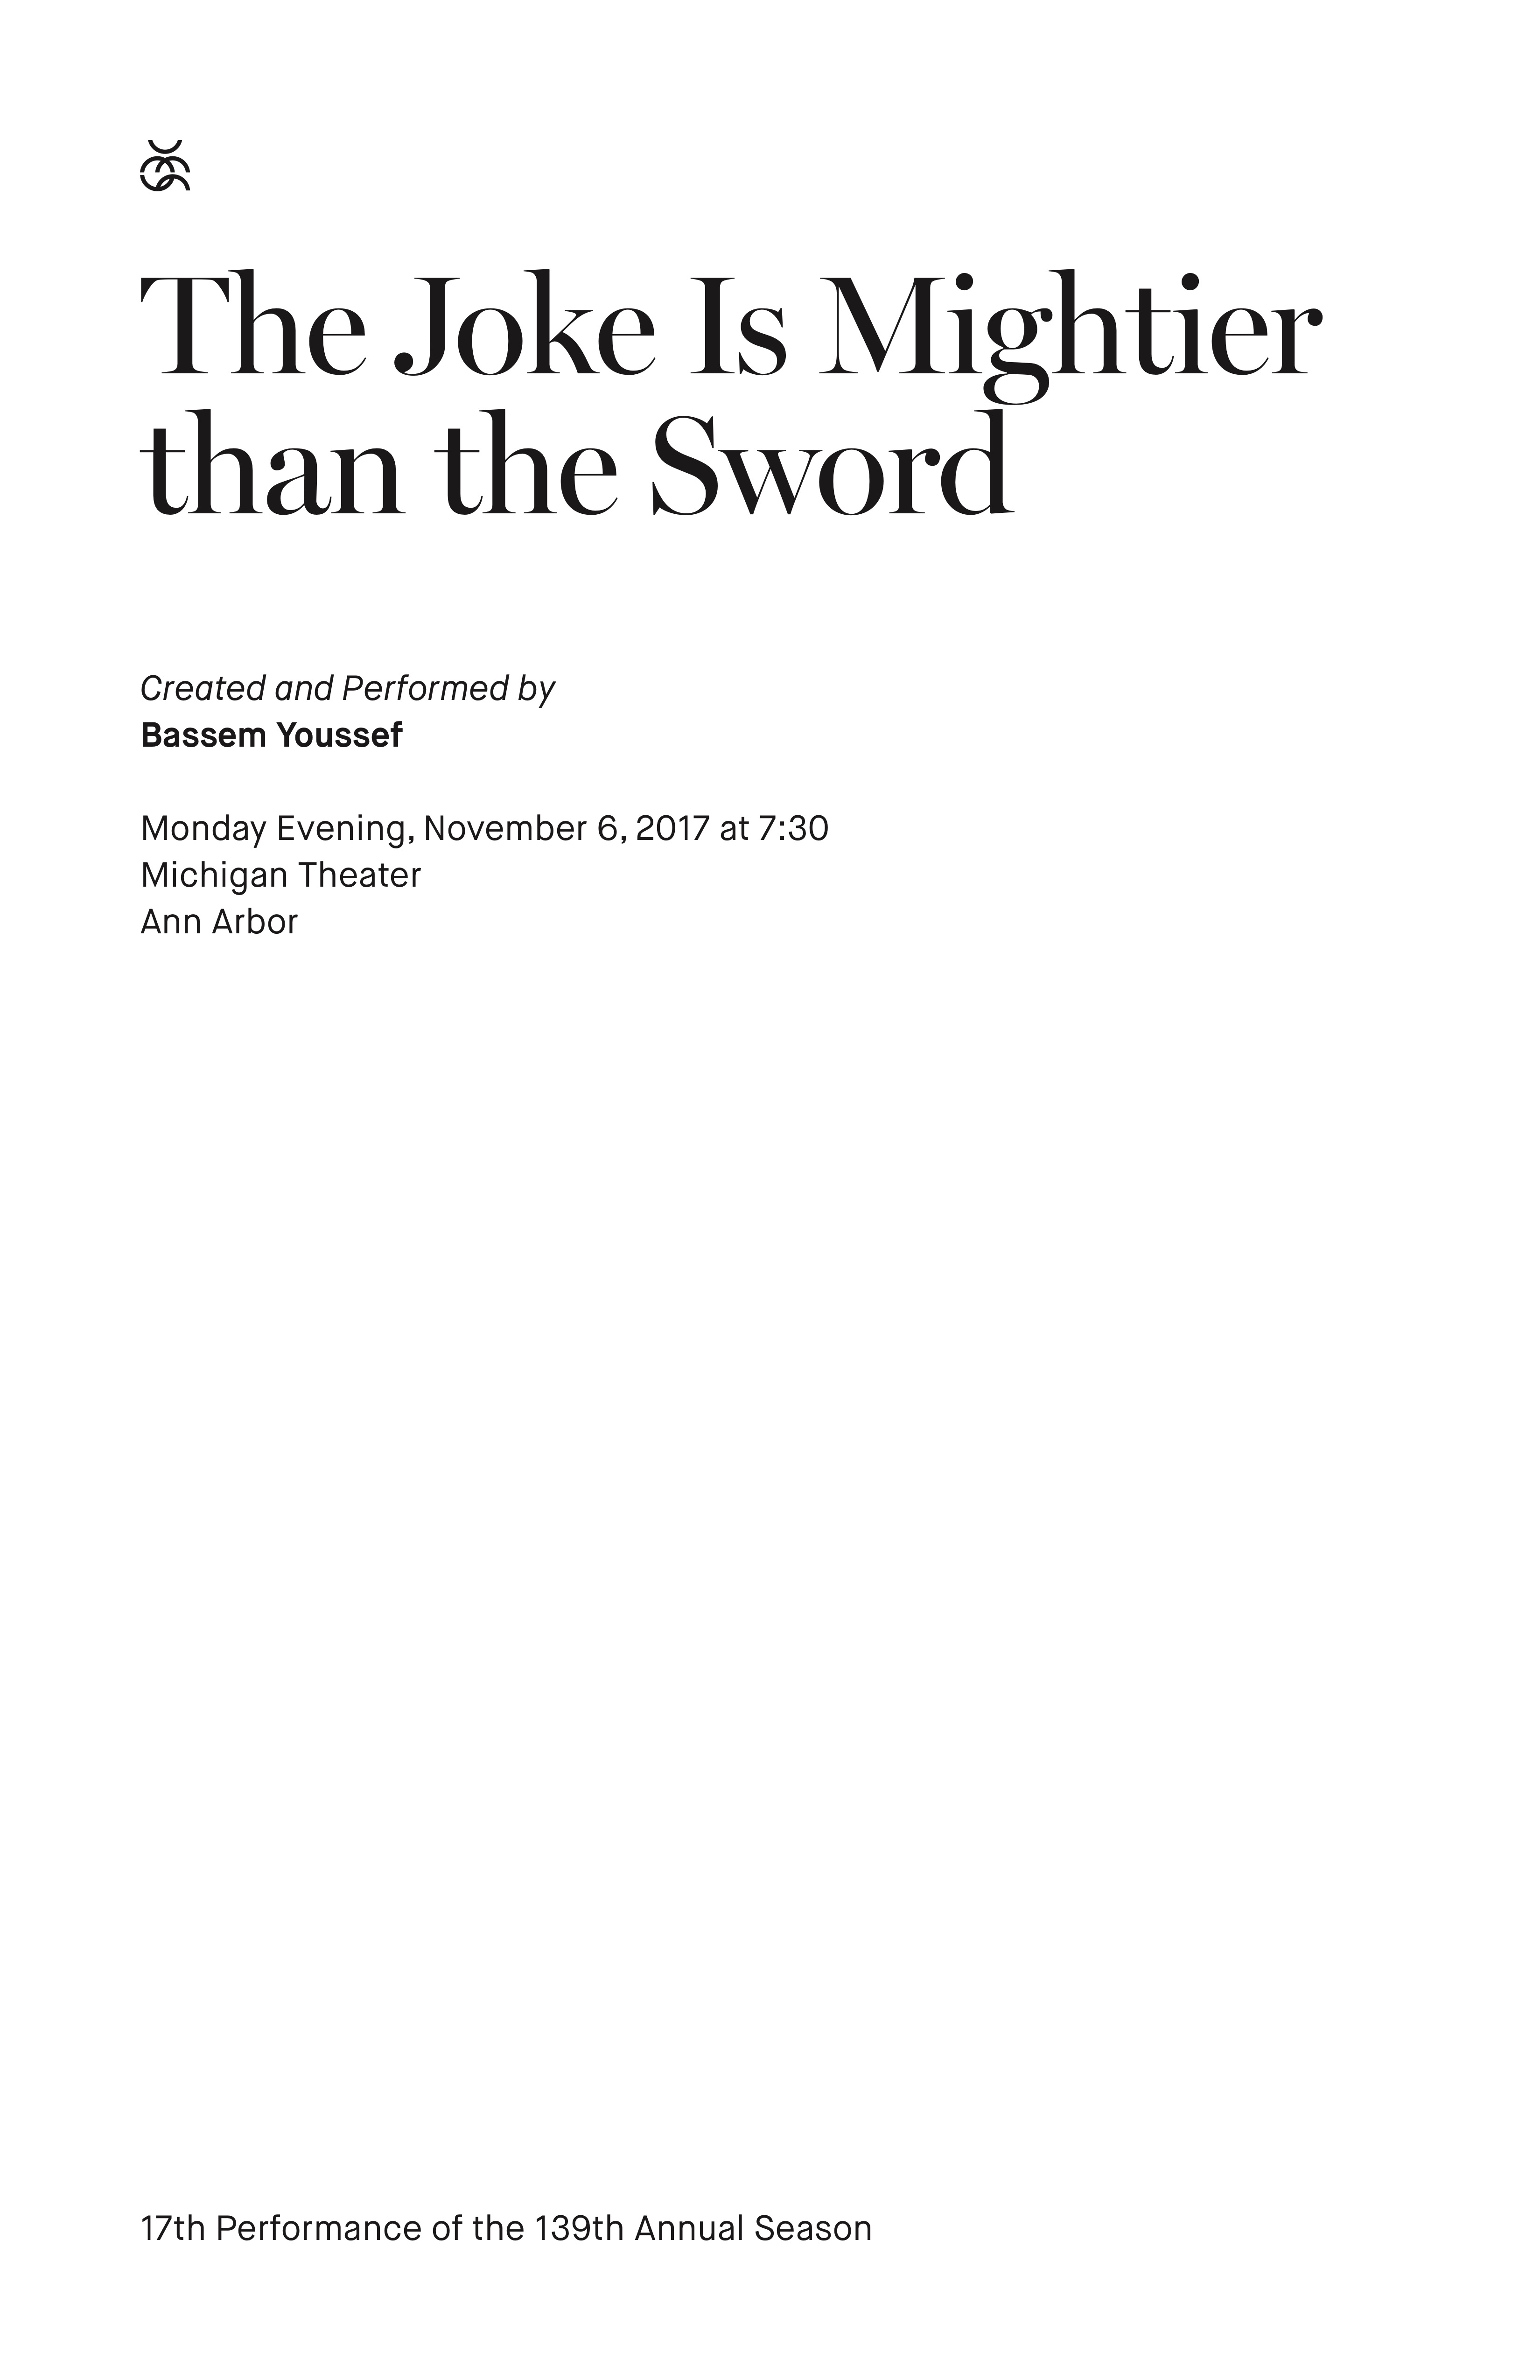 UMS Concert Program, November 6, 2017 - The Joke Is Mightier than the Sword image